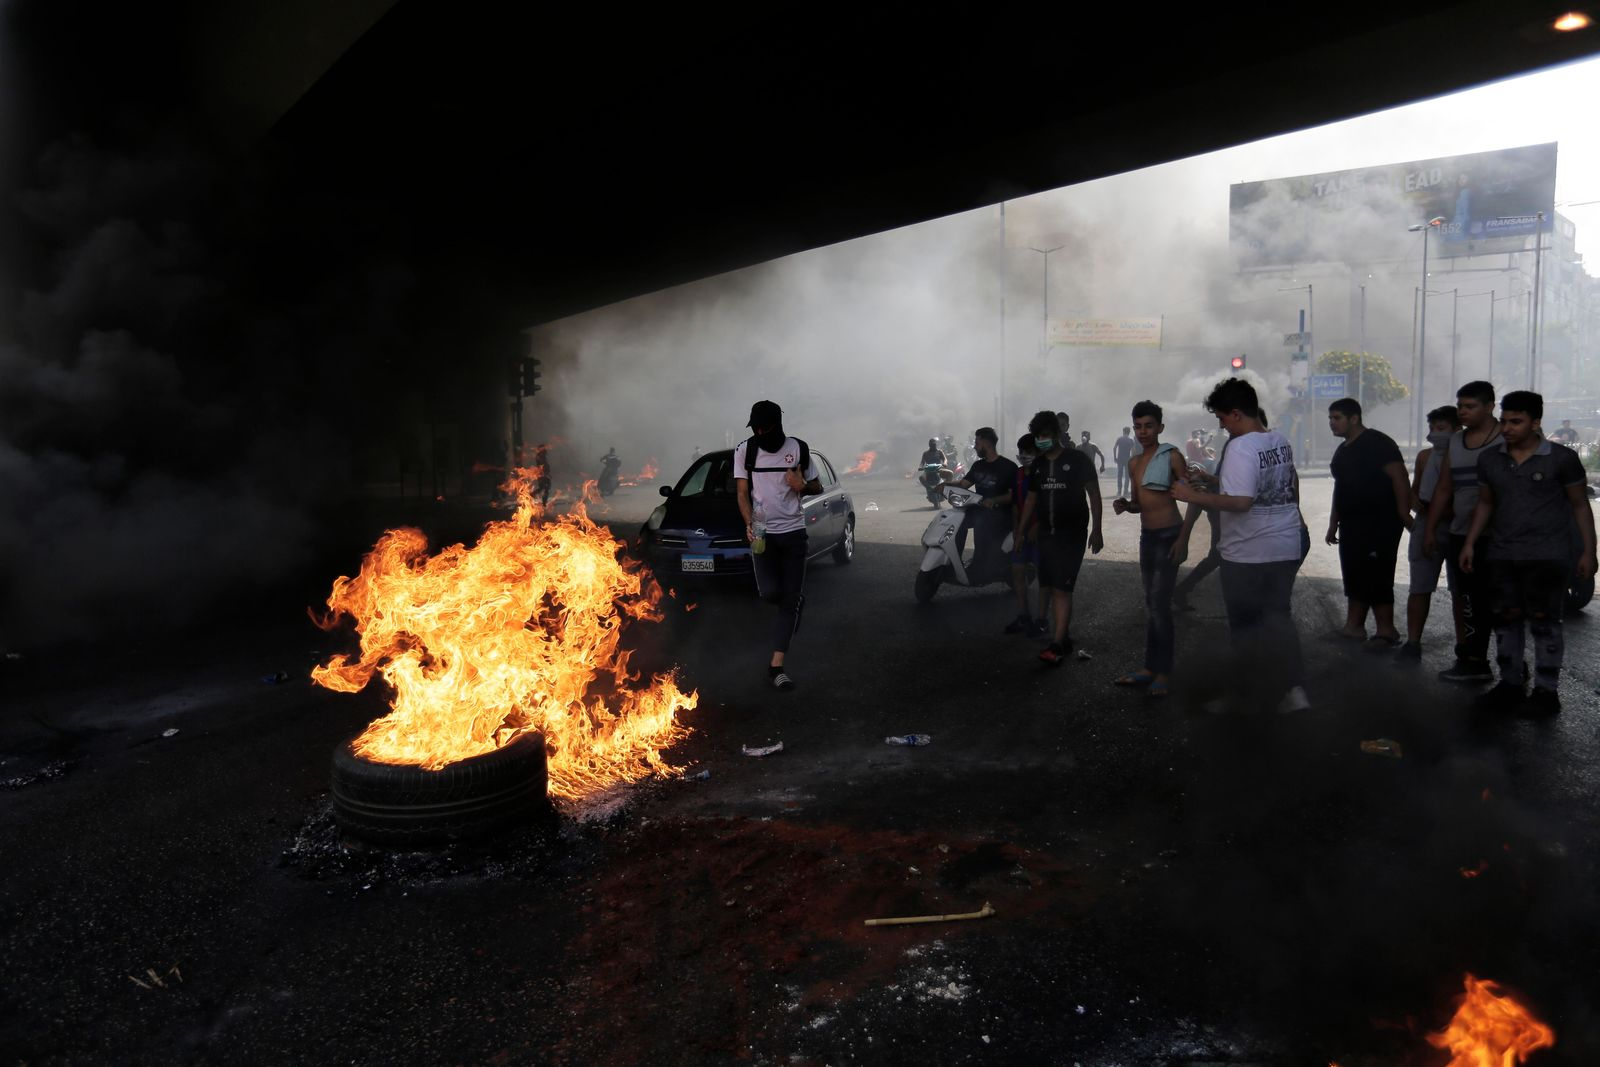 Anti-government protesters set fire on tires to block a road during a protest against government's plans to impose new taxes in Beirut, Lebanon, Friday, Oct. 18, 2019.{ } (AP Photo/Hassan Ammar)